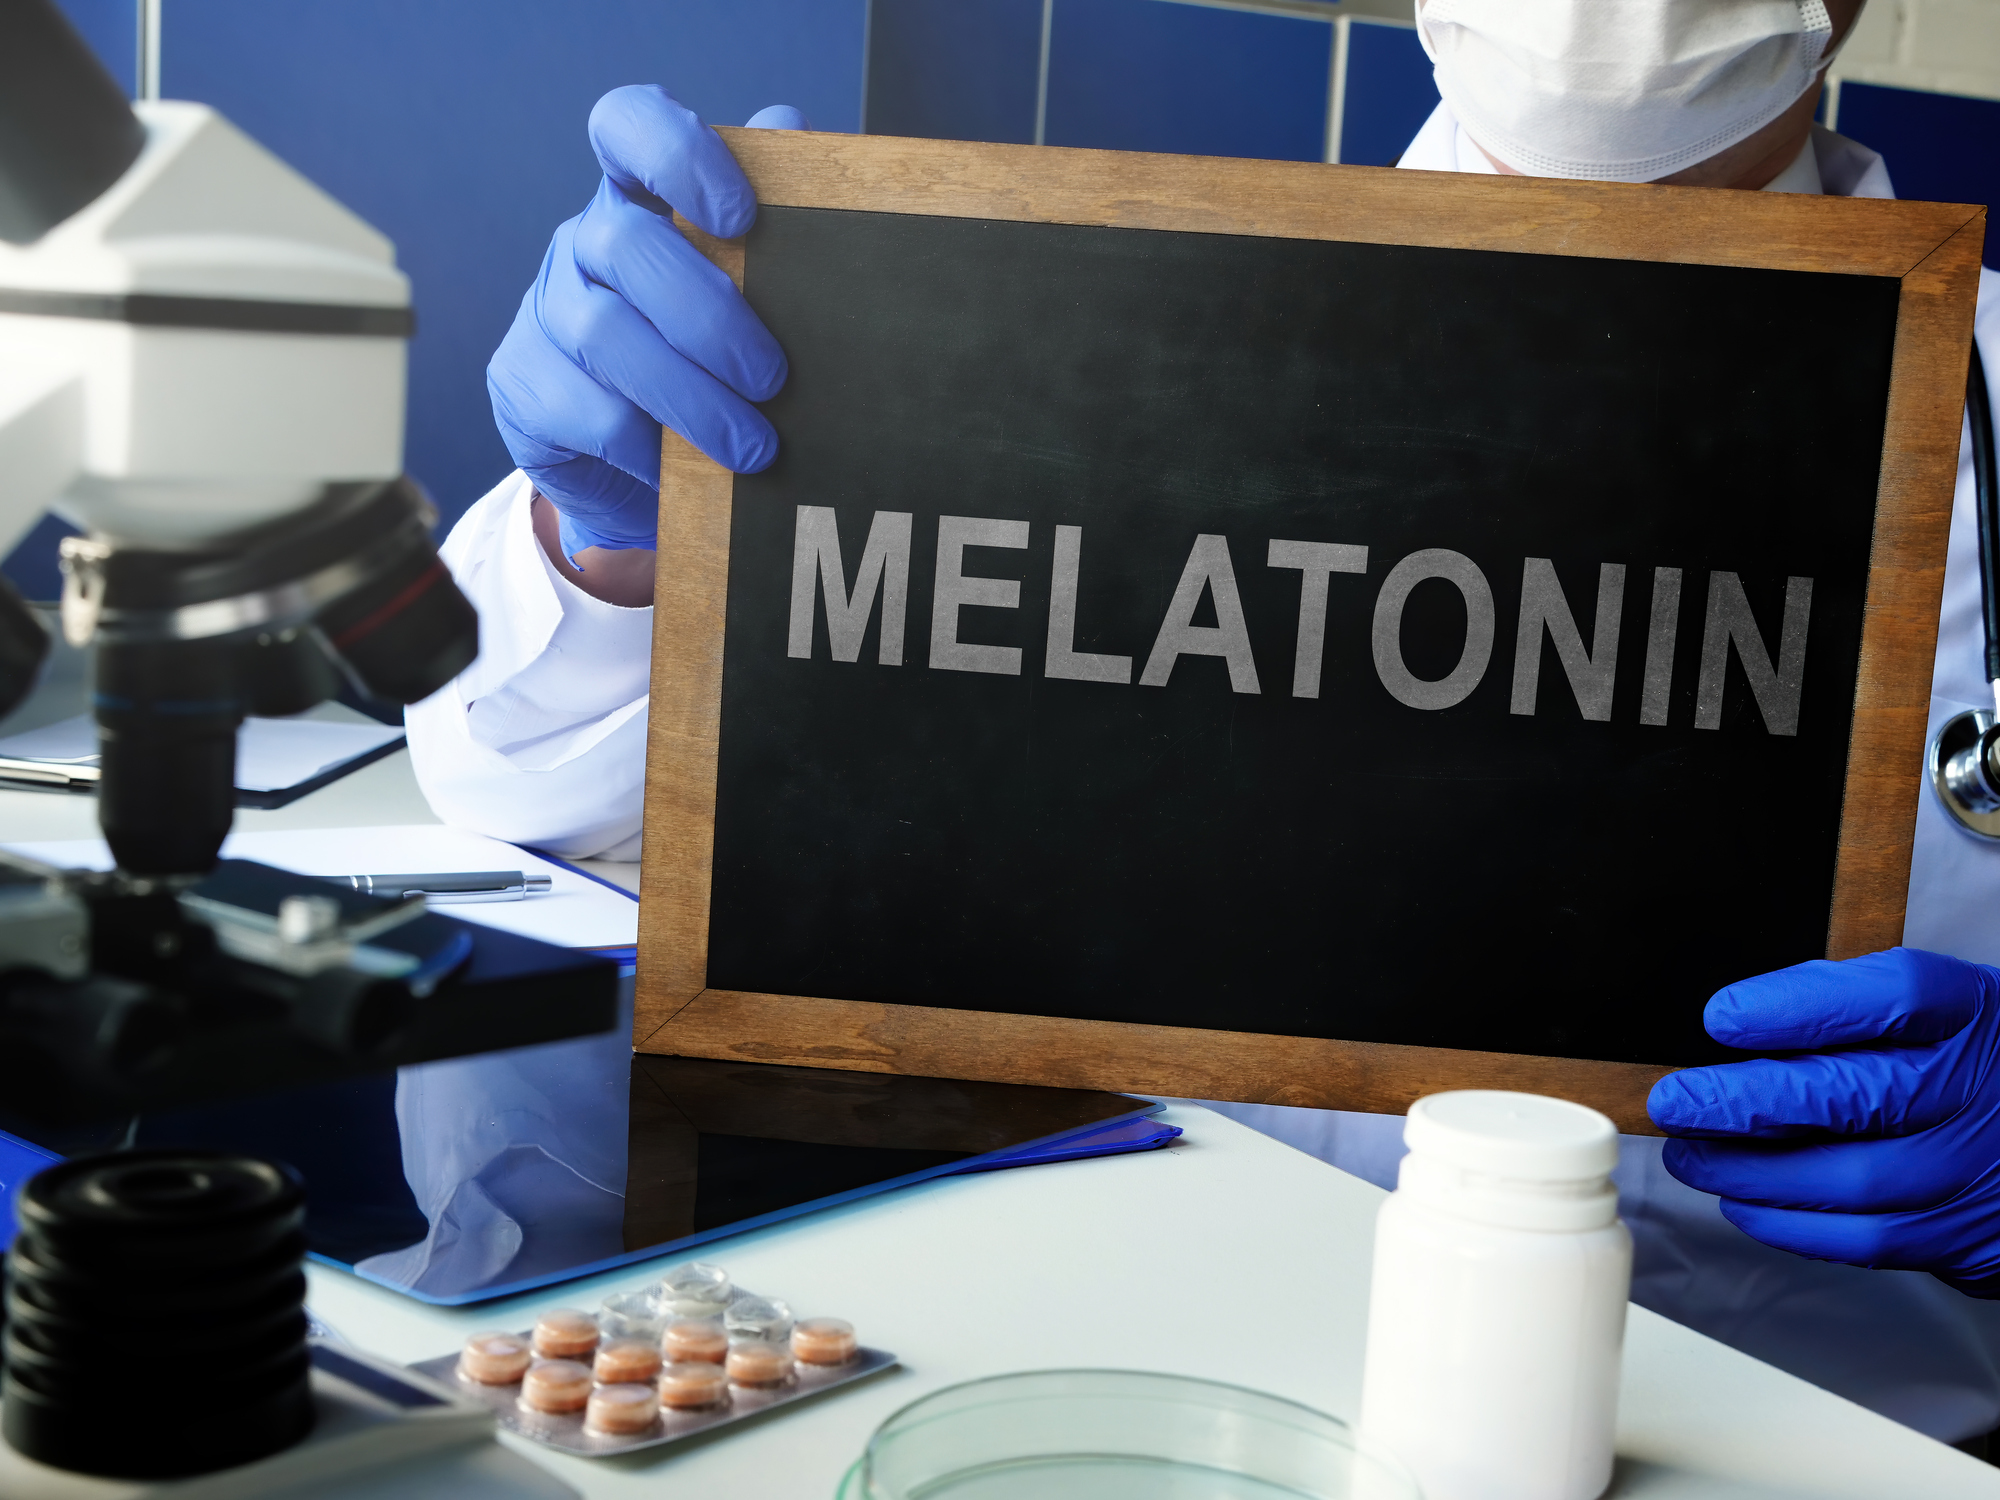 Melatonin - antioxidant and anti-cancer hormone